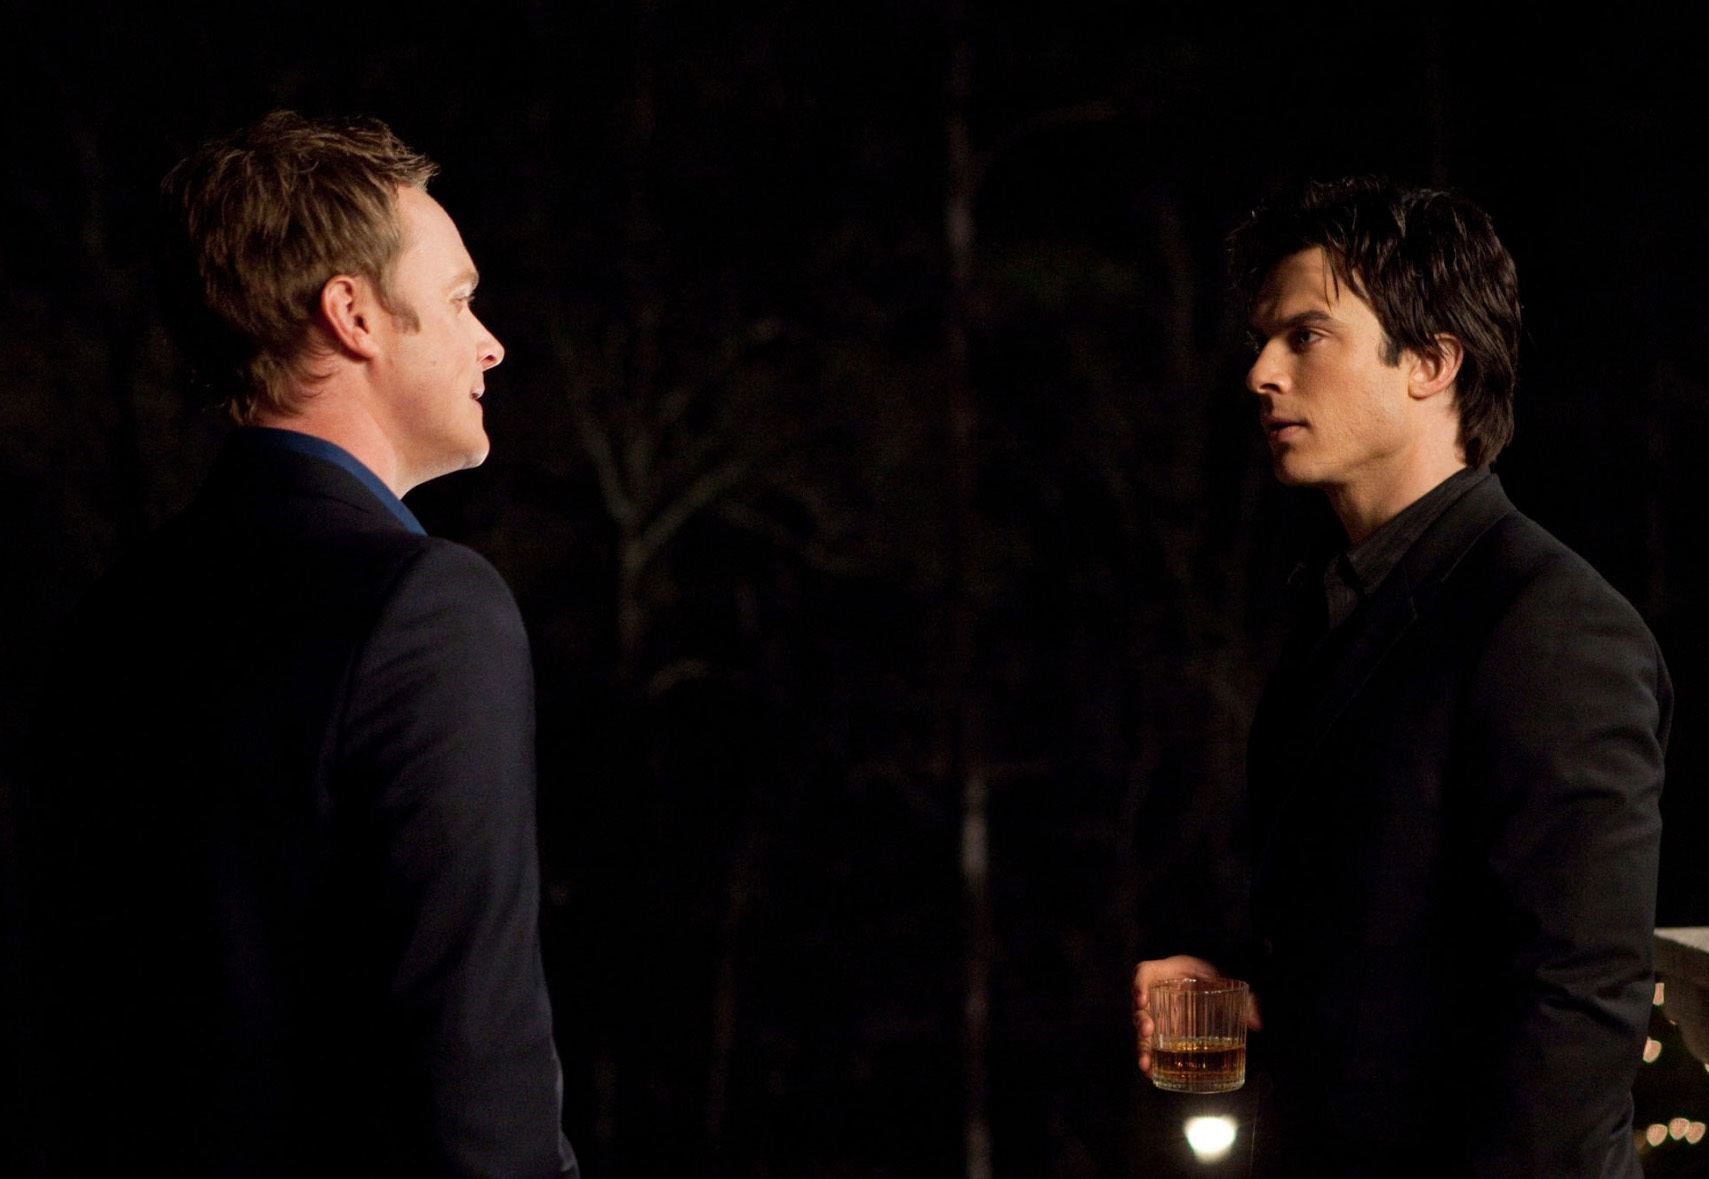 http://images2.fanpop.com/image/photos/11500000/1x18-Under-control-the-vampire-diaries-tv-show-11506063-1709-1179.jpg